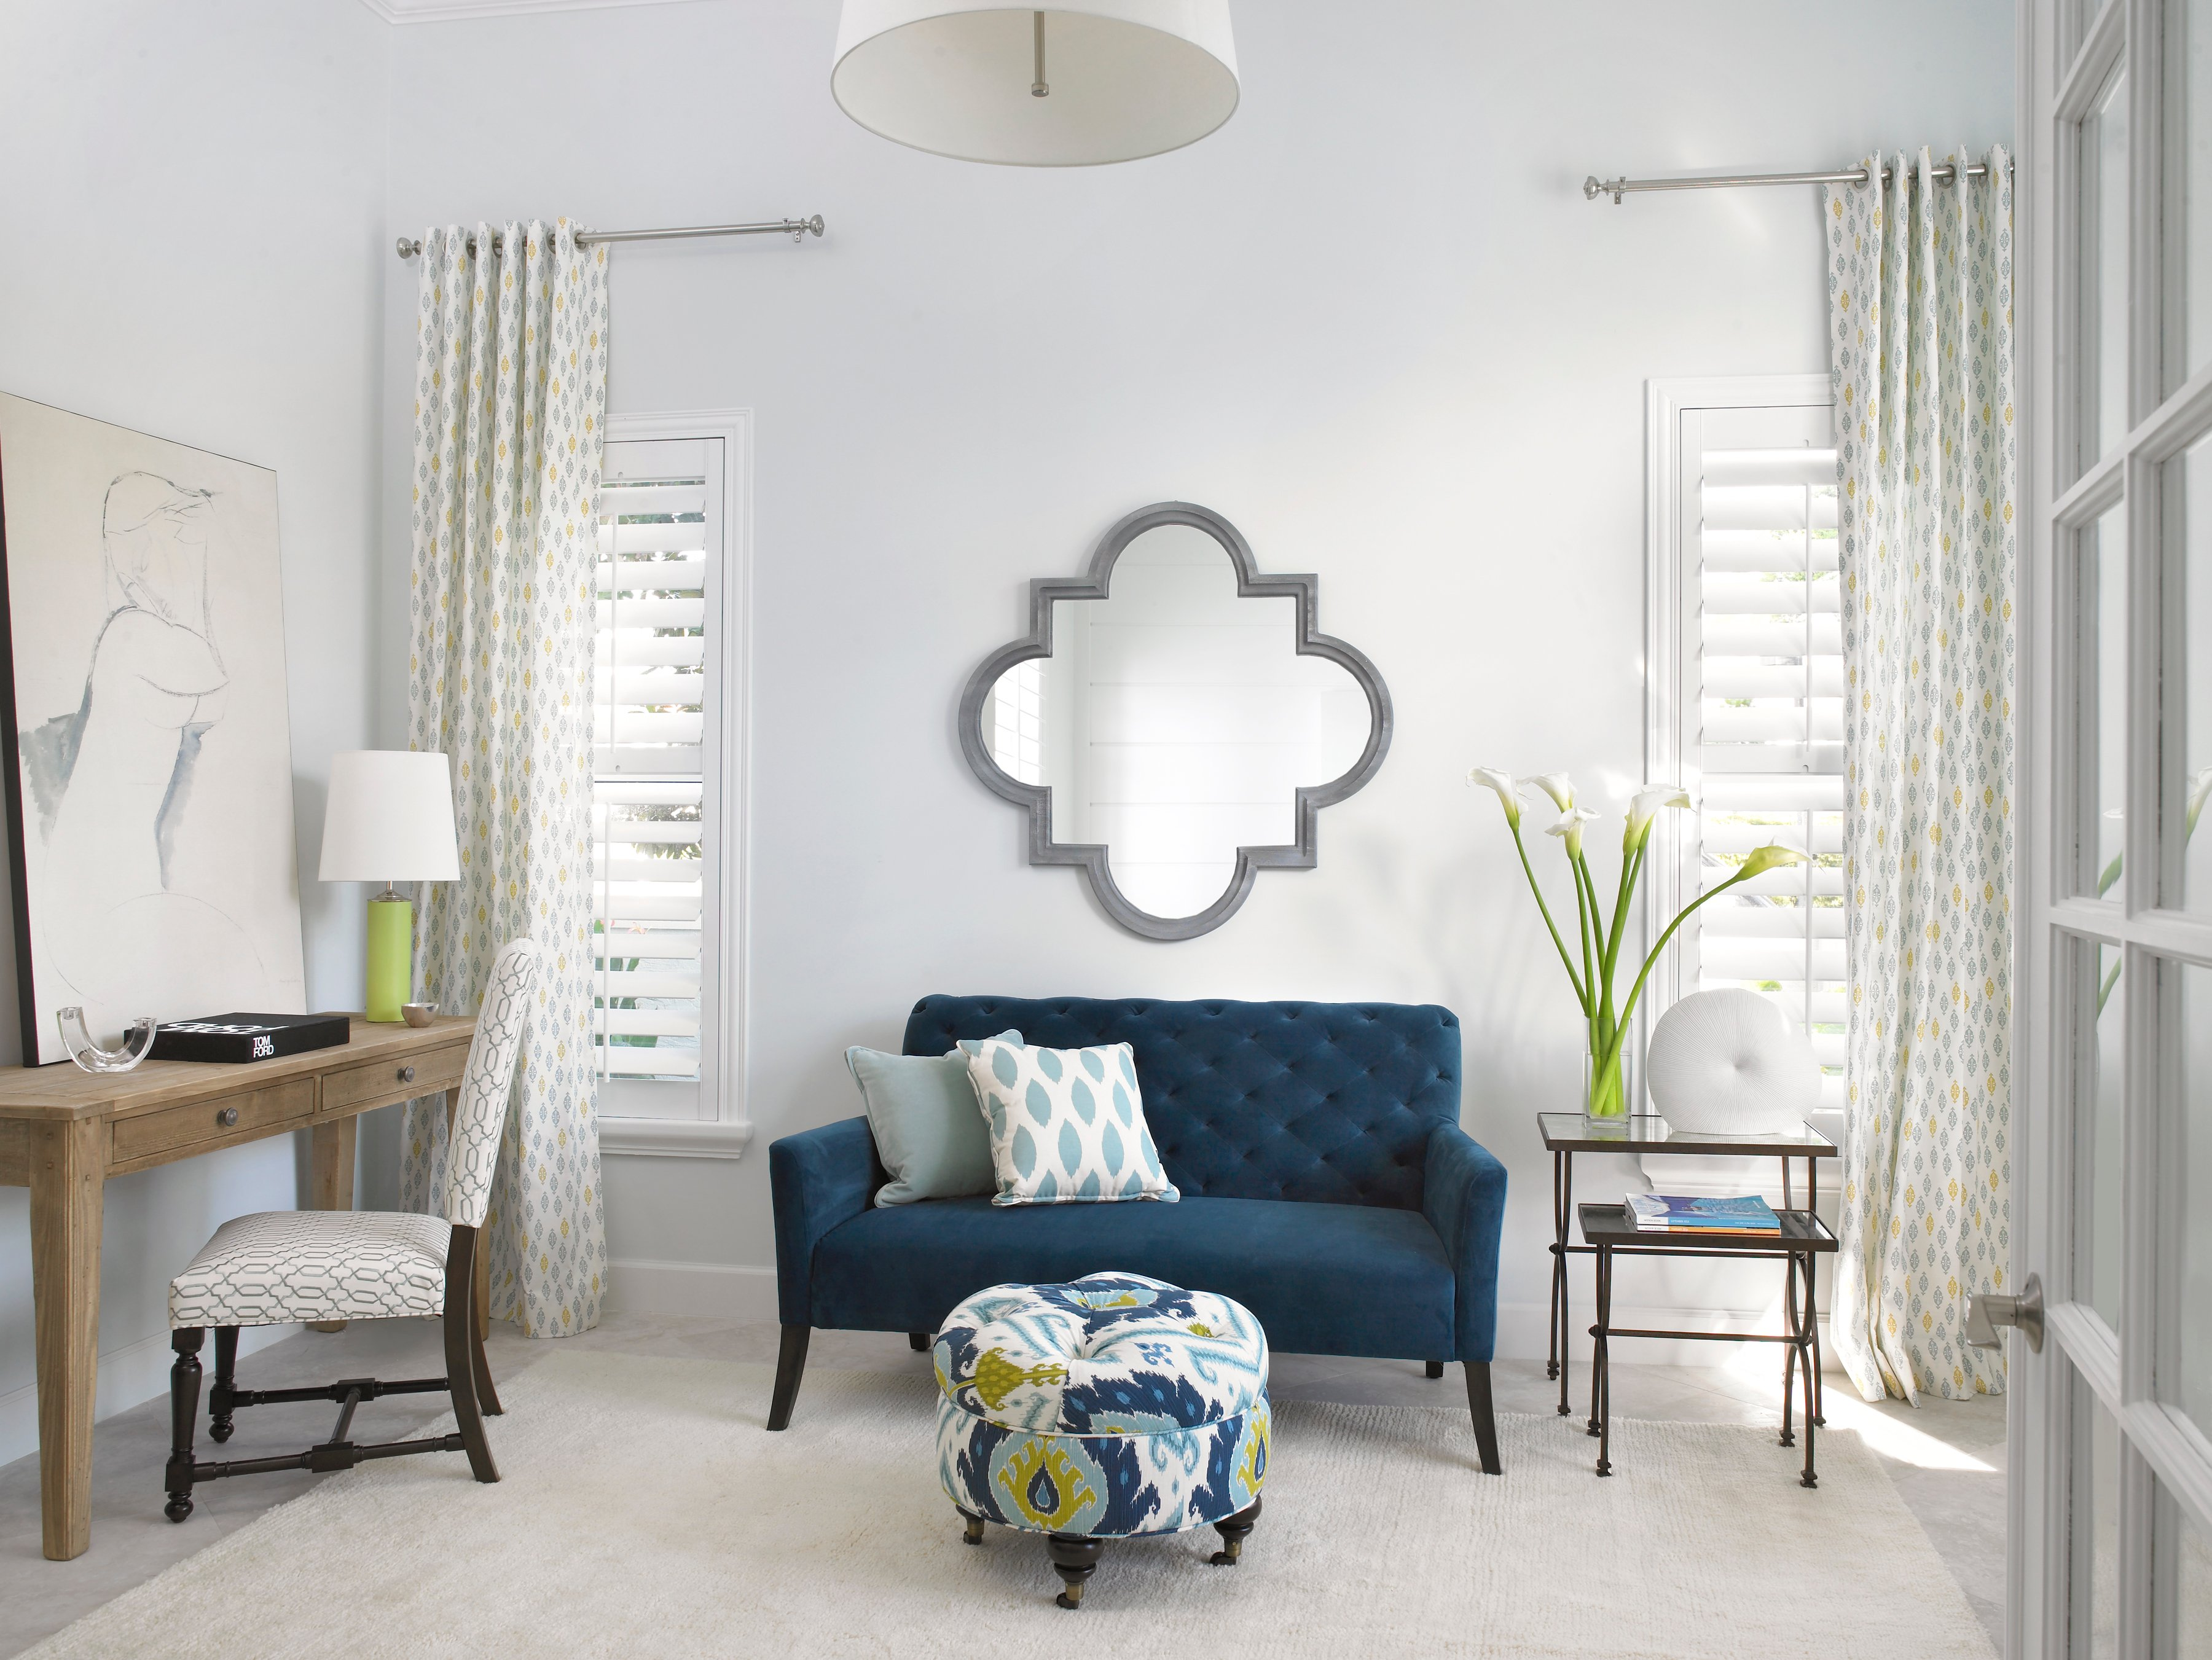 The home office is a light, airy space that promotes creative thinking. The blue velvet settee has a coordinating tufted ottoman that adds visual interest and warmth to the light color palette. A moroccan mirror hangs above the settee. The multiple patterns create a layering effect, rather than clashing. The simple desk is rustic, yet elegant, and a simple sketch adorns it, along with a small lamp and a glass paper weight. A glass vase with calla lilies is another perfect touch.